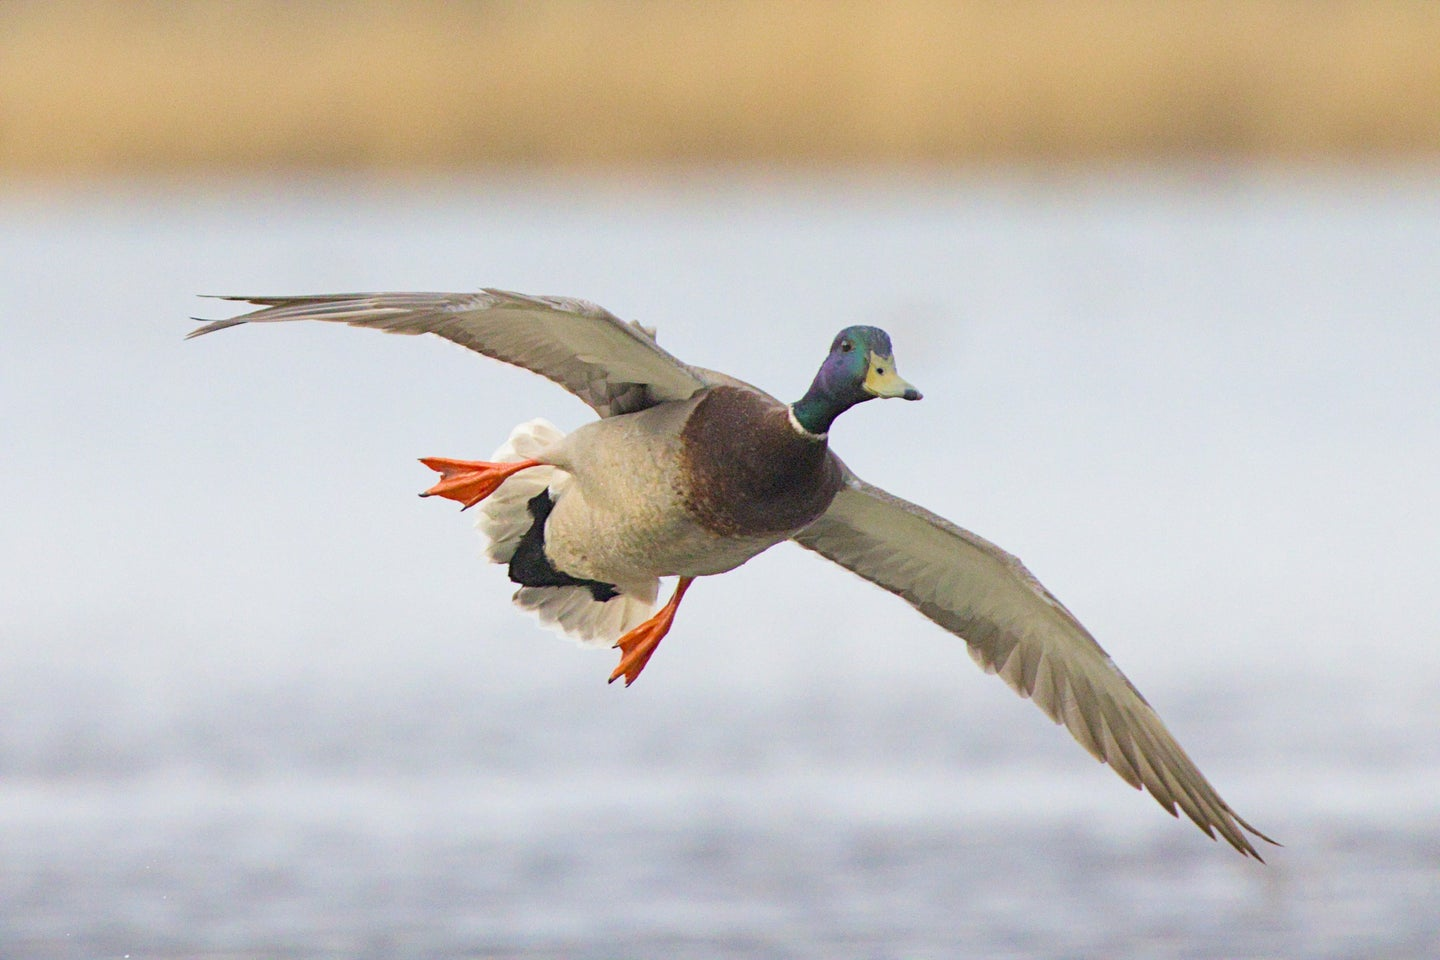 There will be fewer ducks in the fall flight this year.